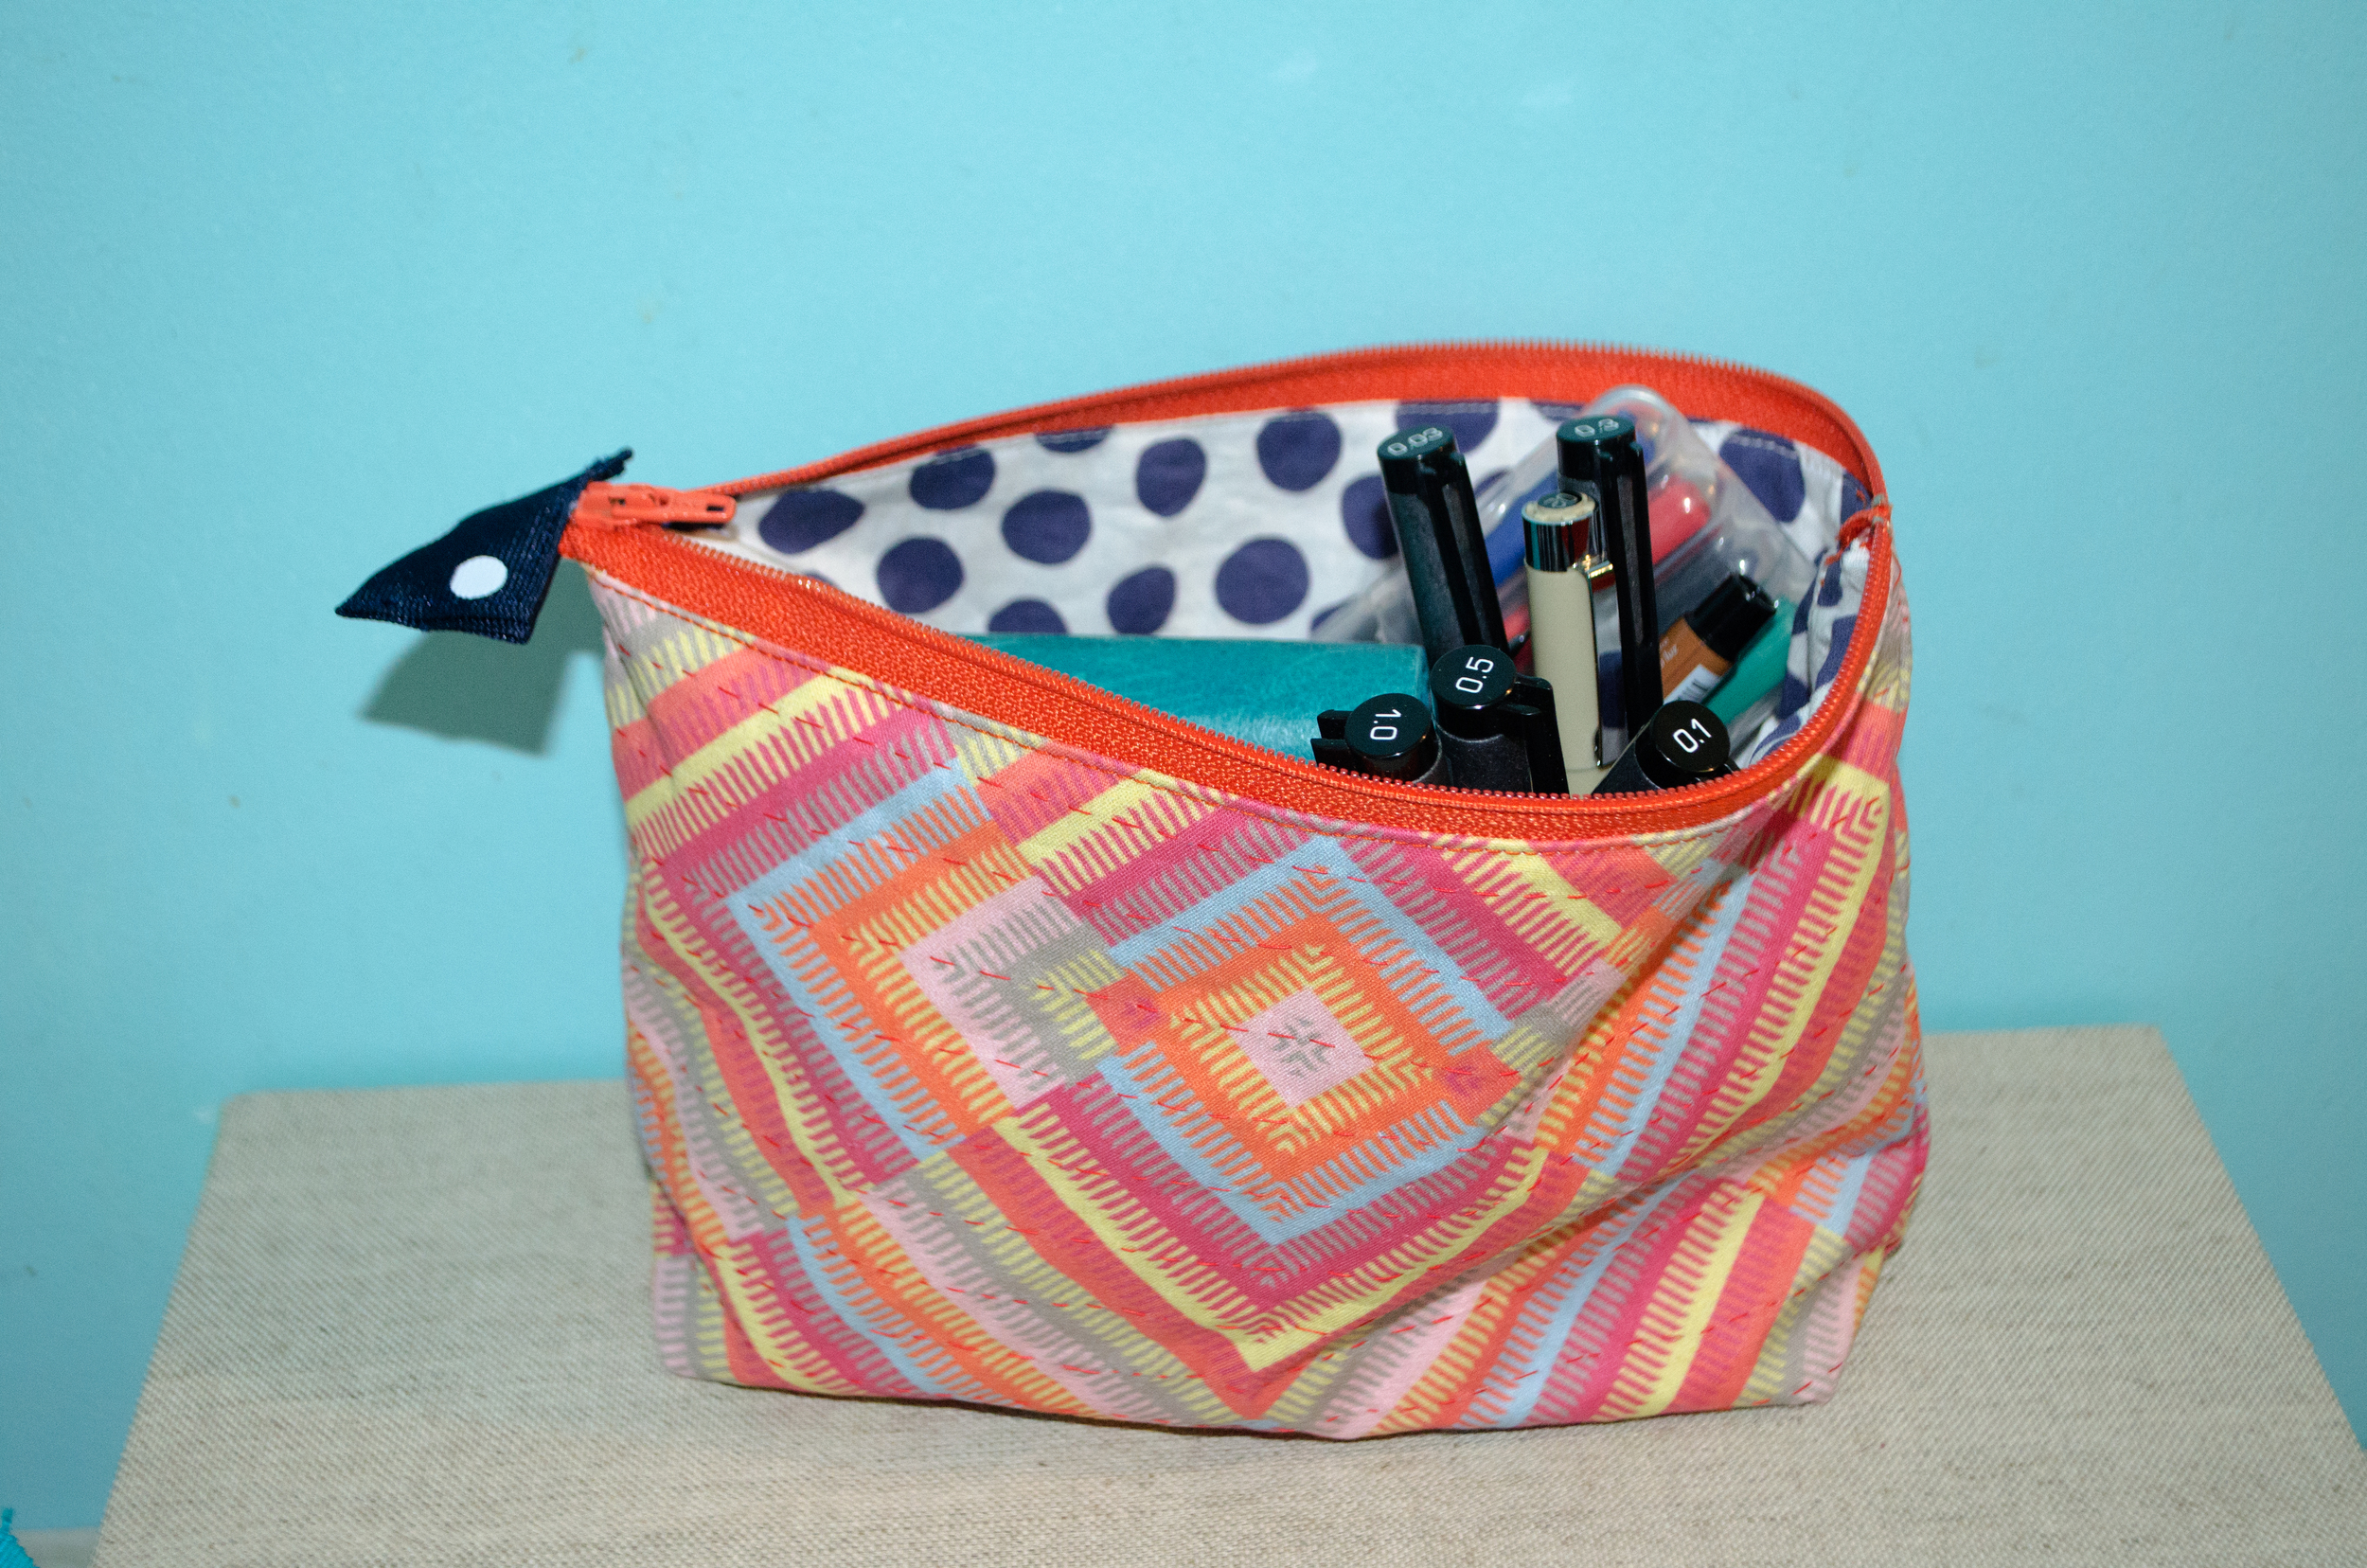 Finished Sprout Pattern Zipper Pouch filled with art journaling supplies.